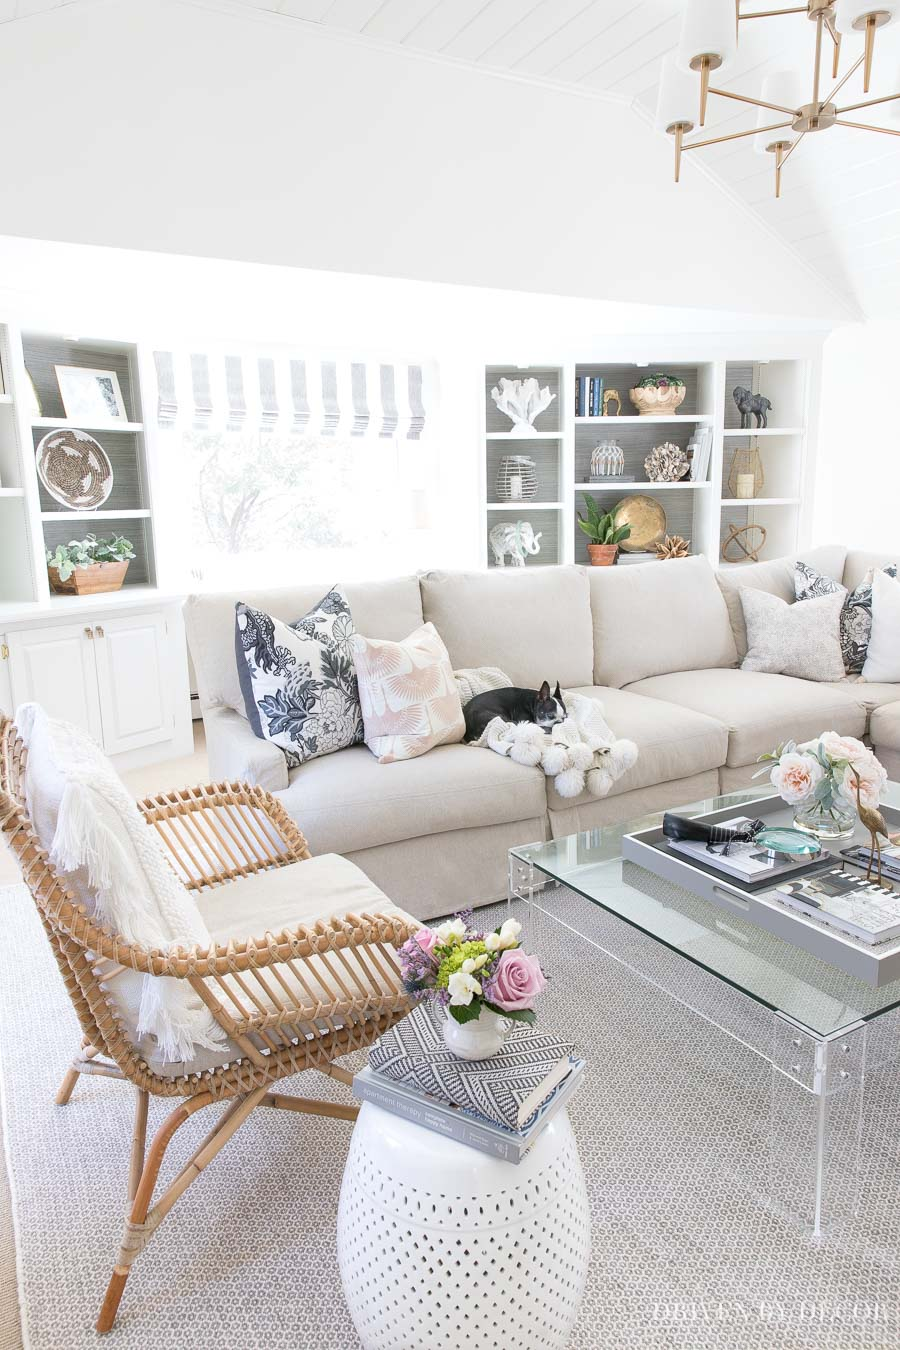 Must-have tips for decorating your living room for spring with furniture and accessories that you'll use in summer too!